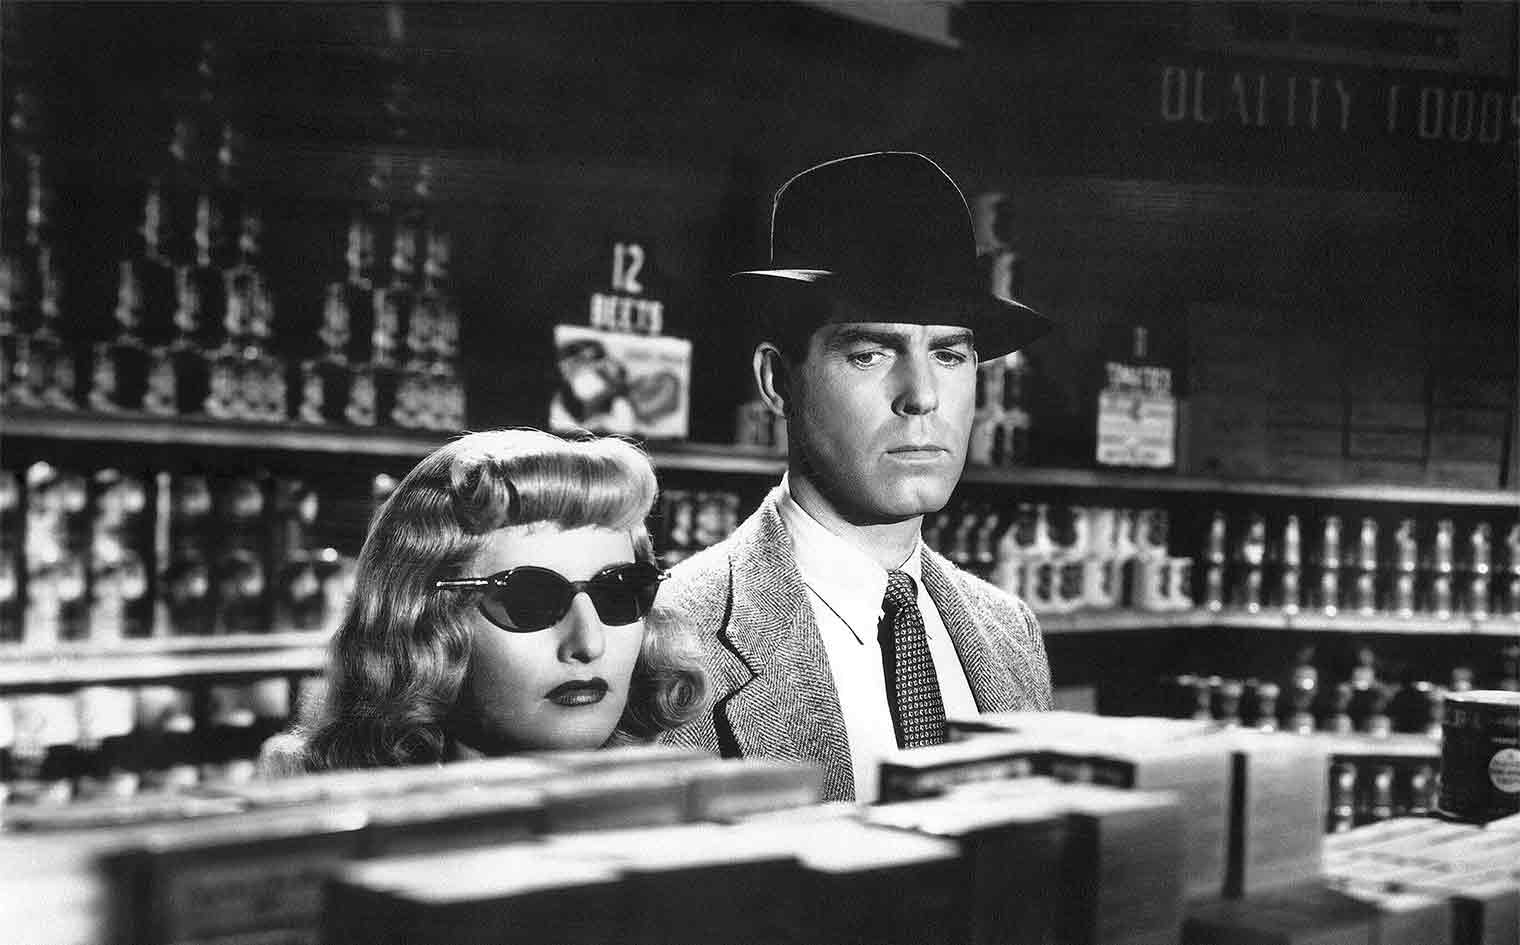 Stanwyck's shades though.....